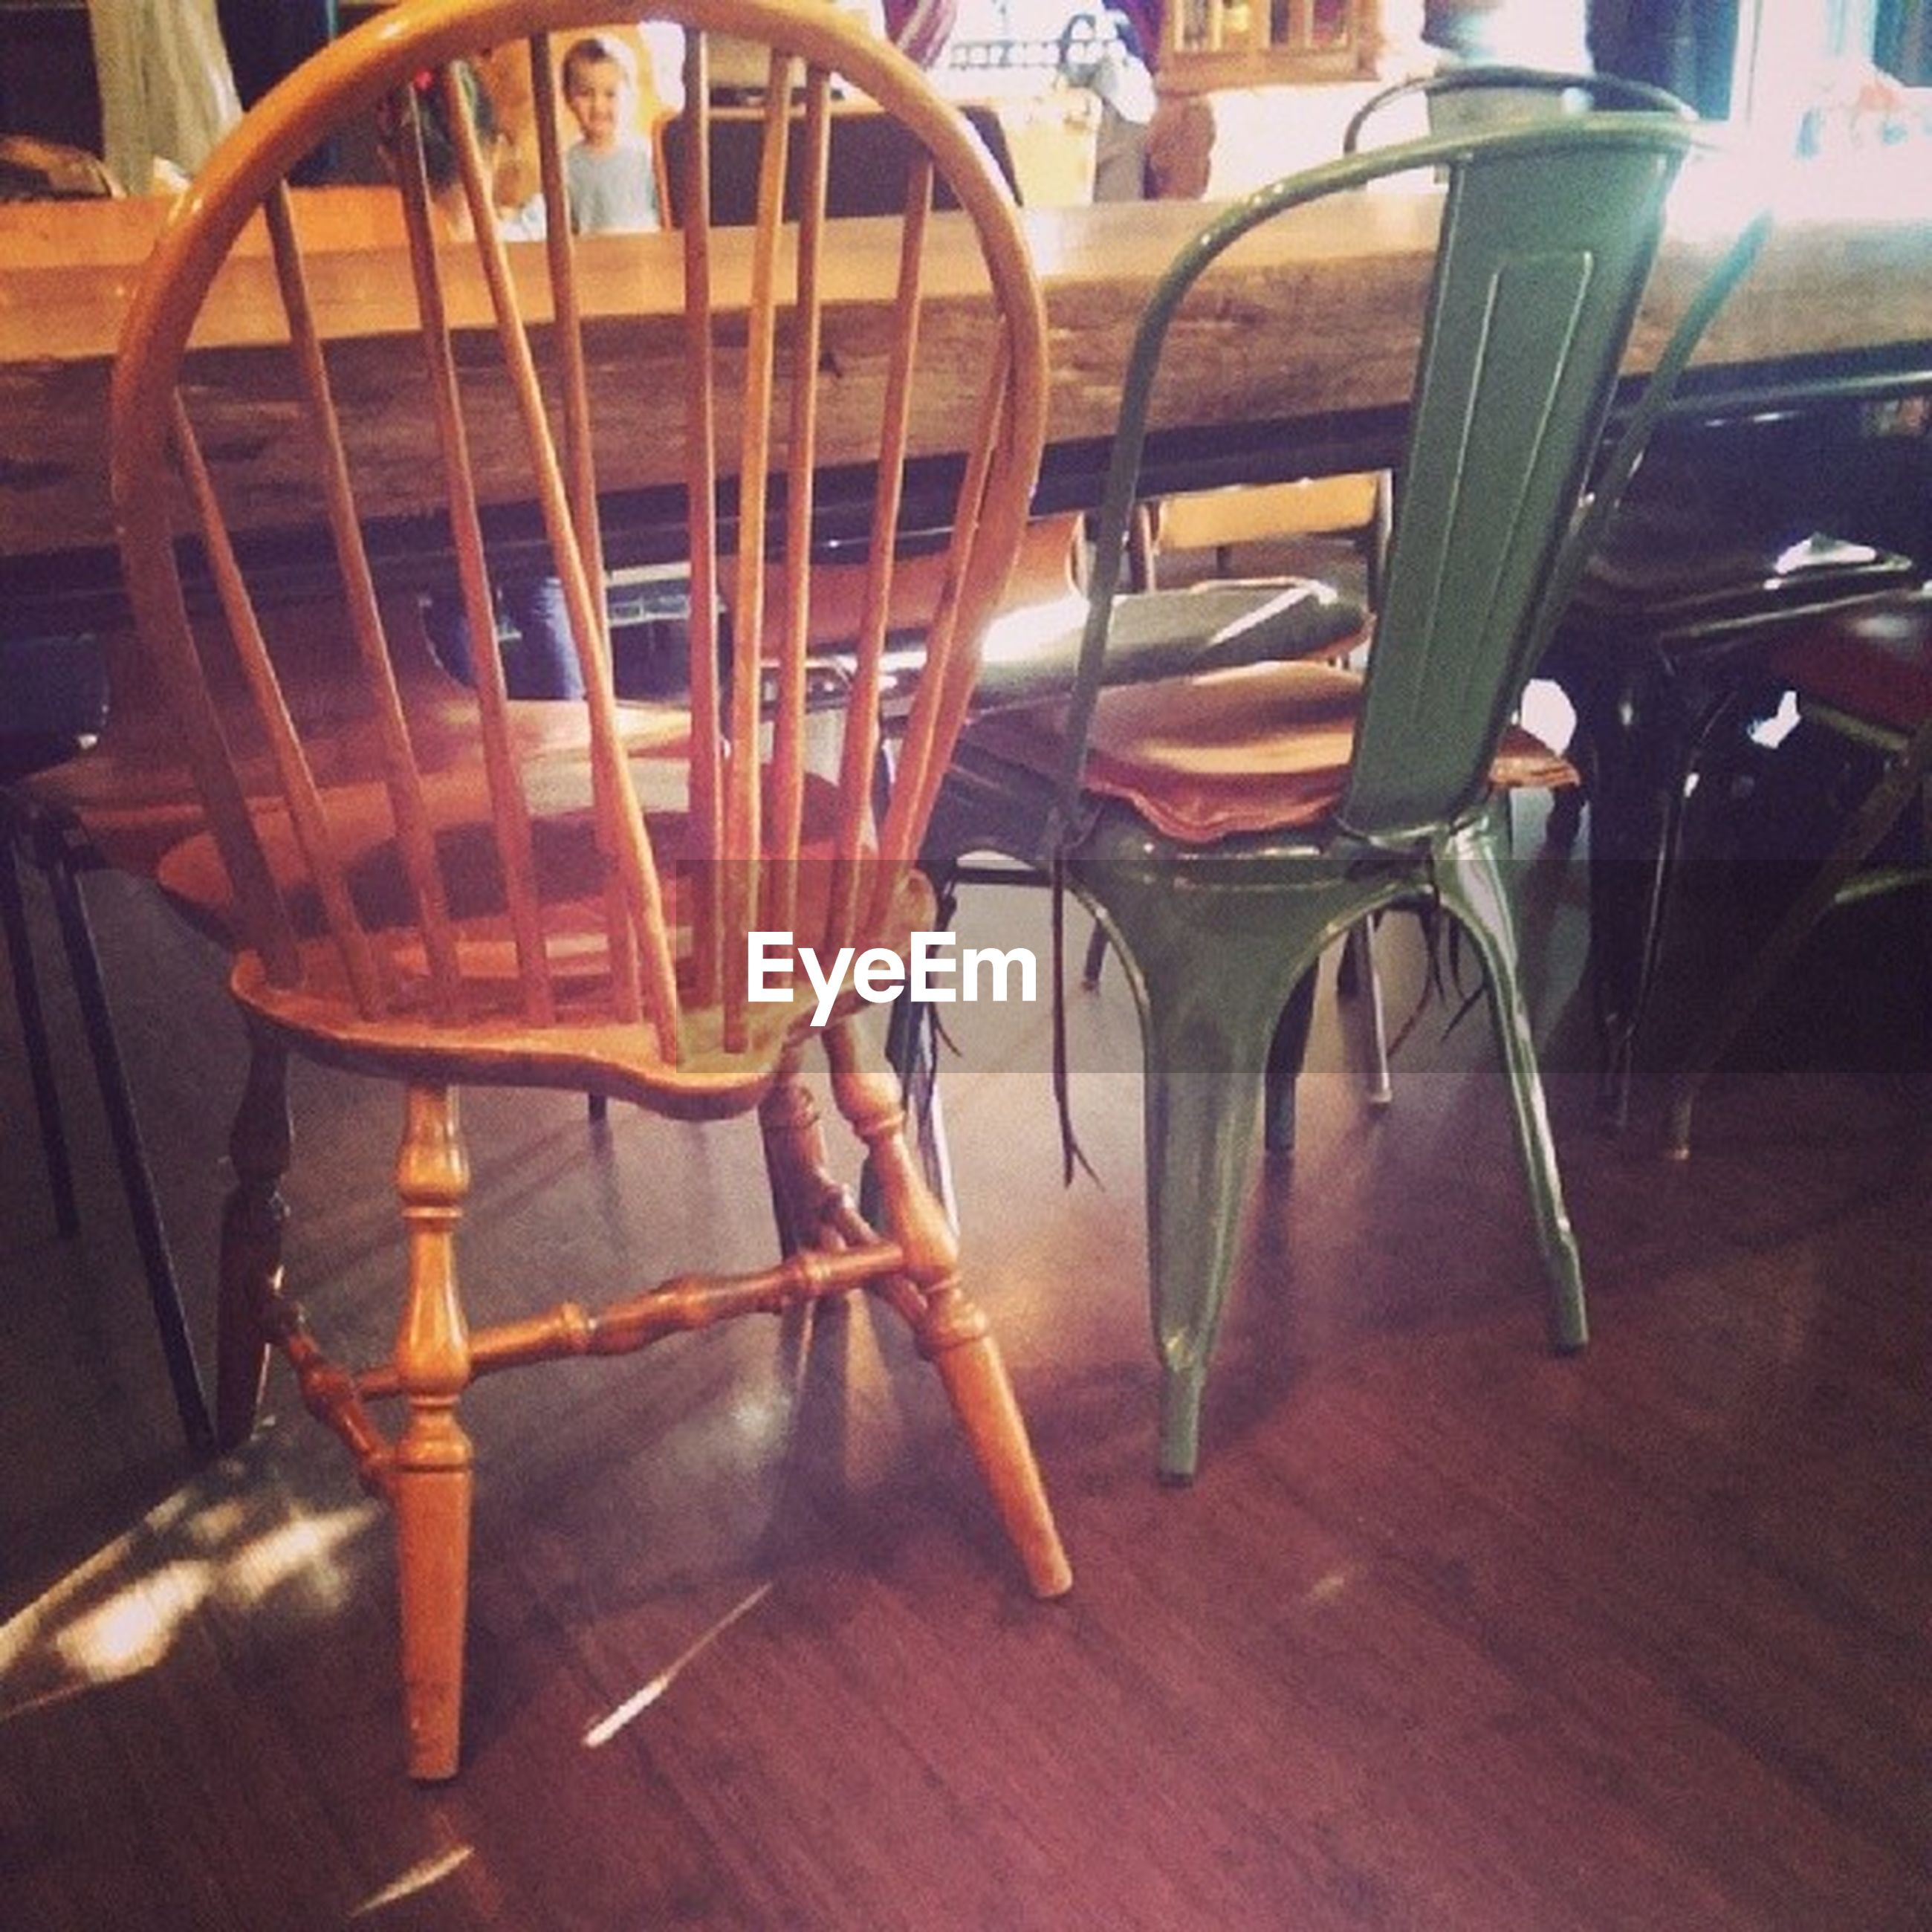 indoors, table, chair, wood - material, empty, absence, flooring, still life, no people, wooden, furniture, seat, close-up, wood, focus on foreground, shadow, in a row, animal themes, reflection, floor